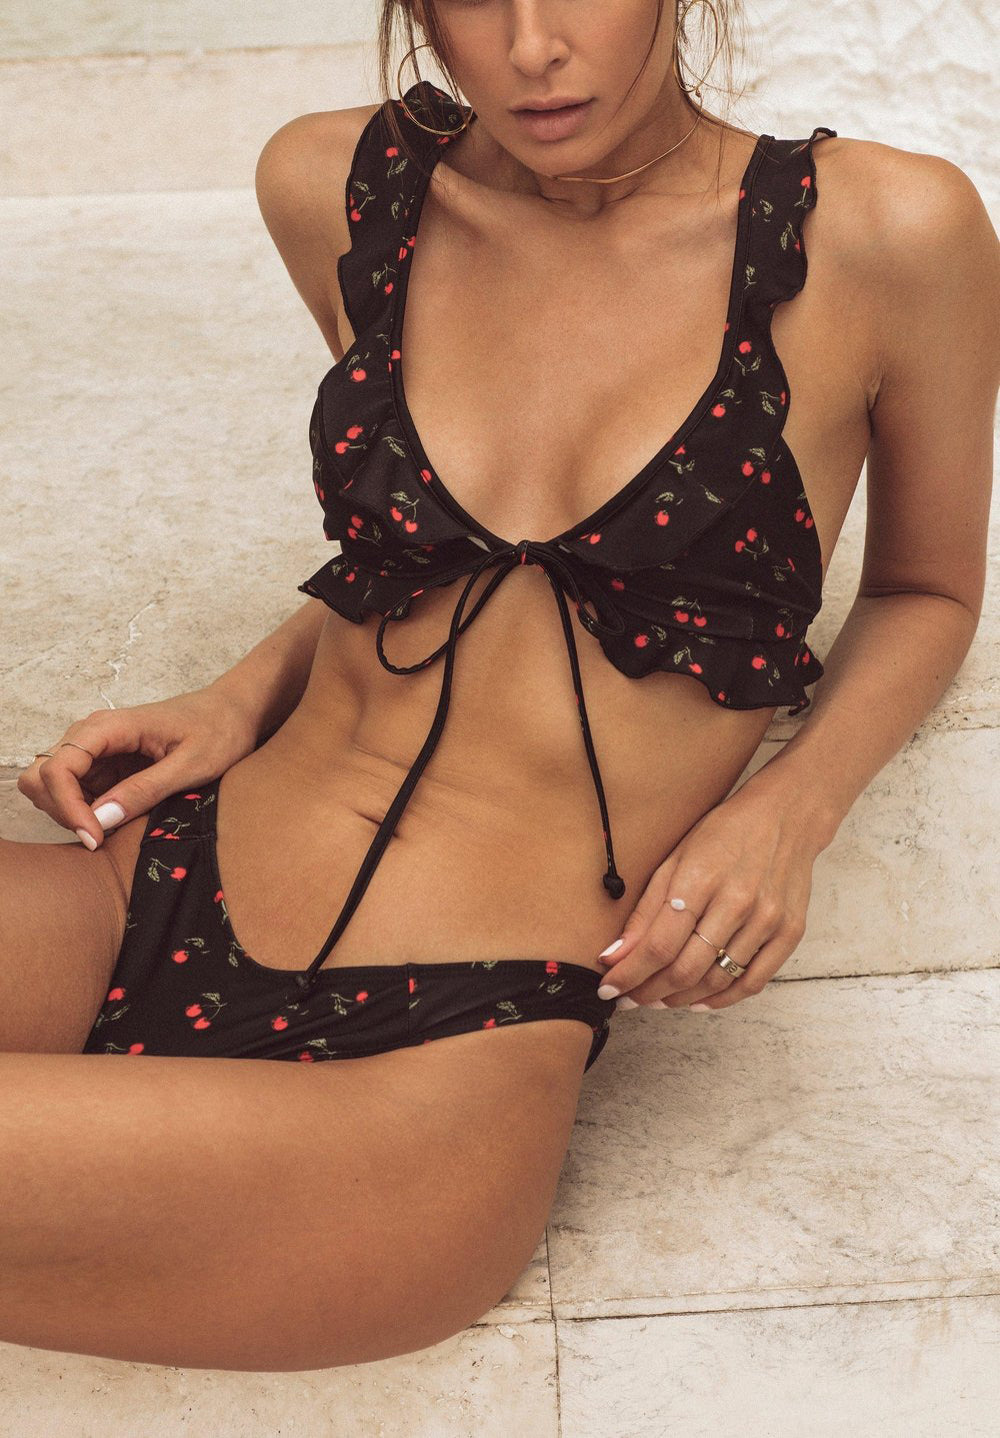 For Love & Lemons - Mon Cheri Top x Hi Rise Btm Bikini - Luxe Cartel